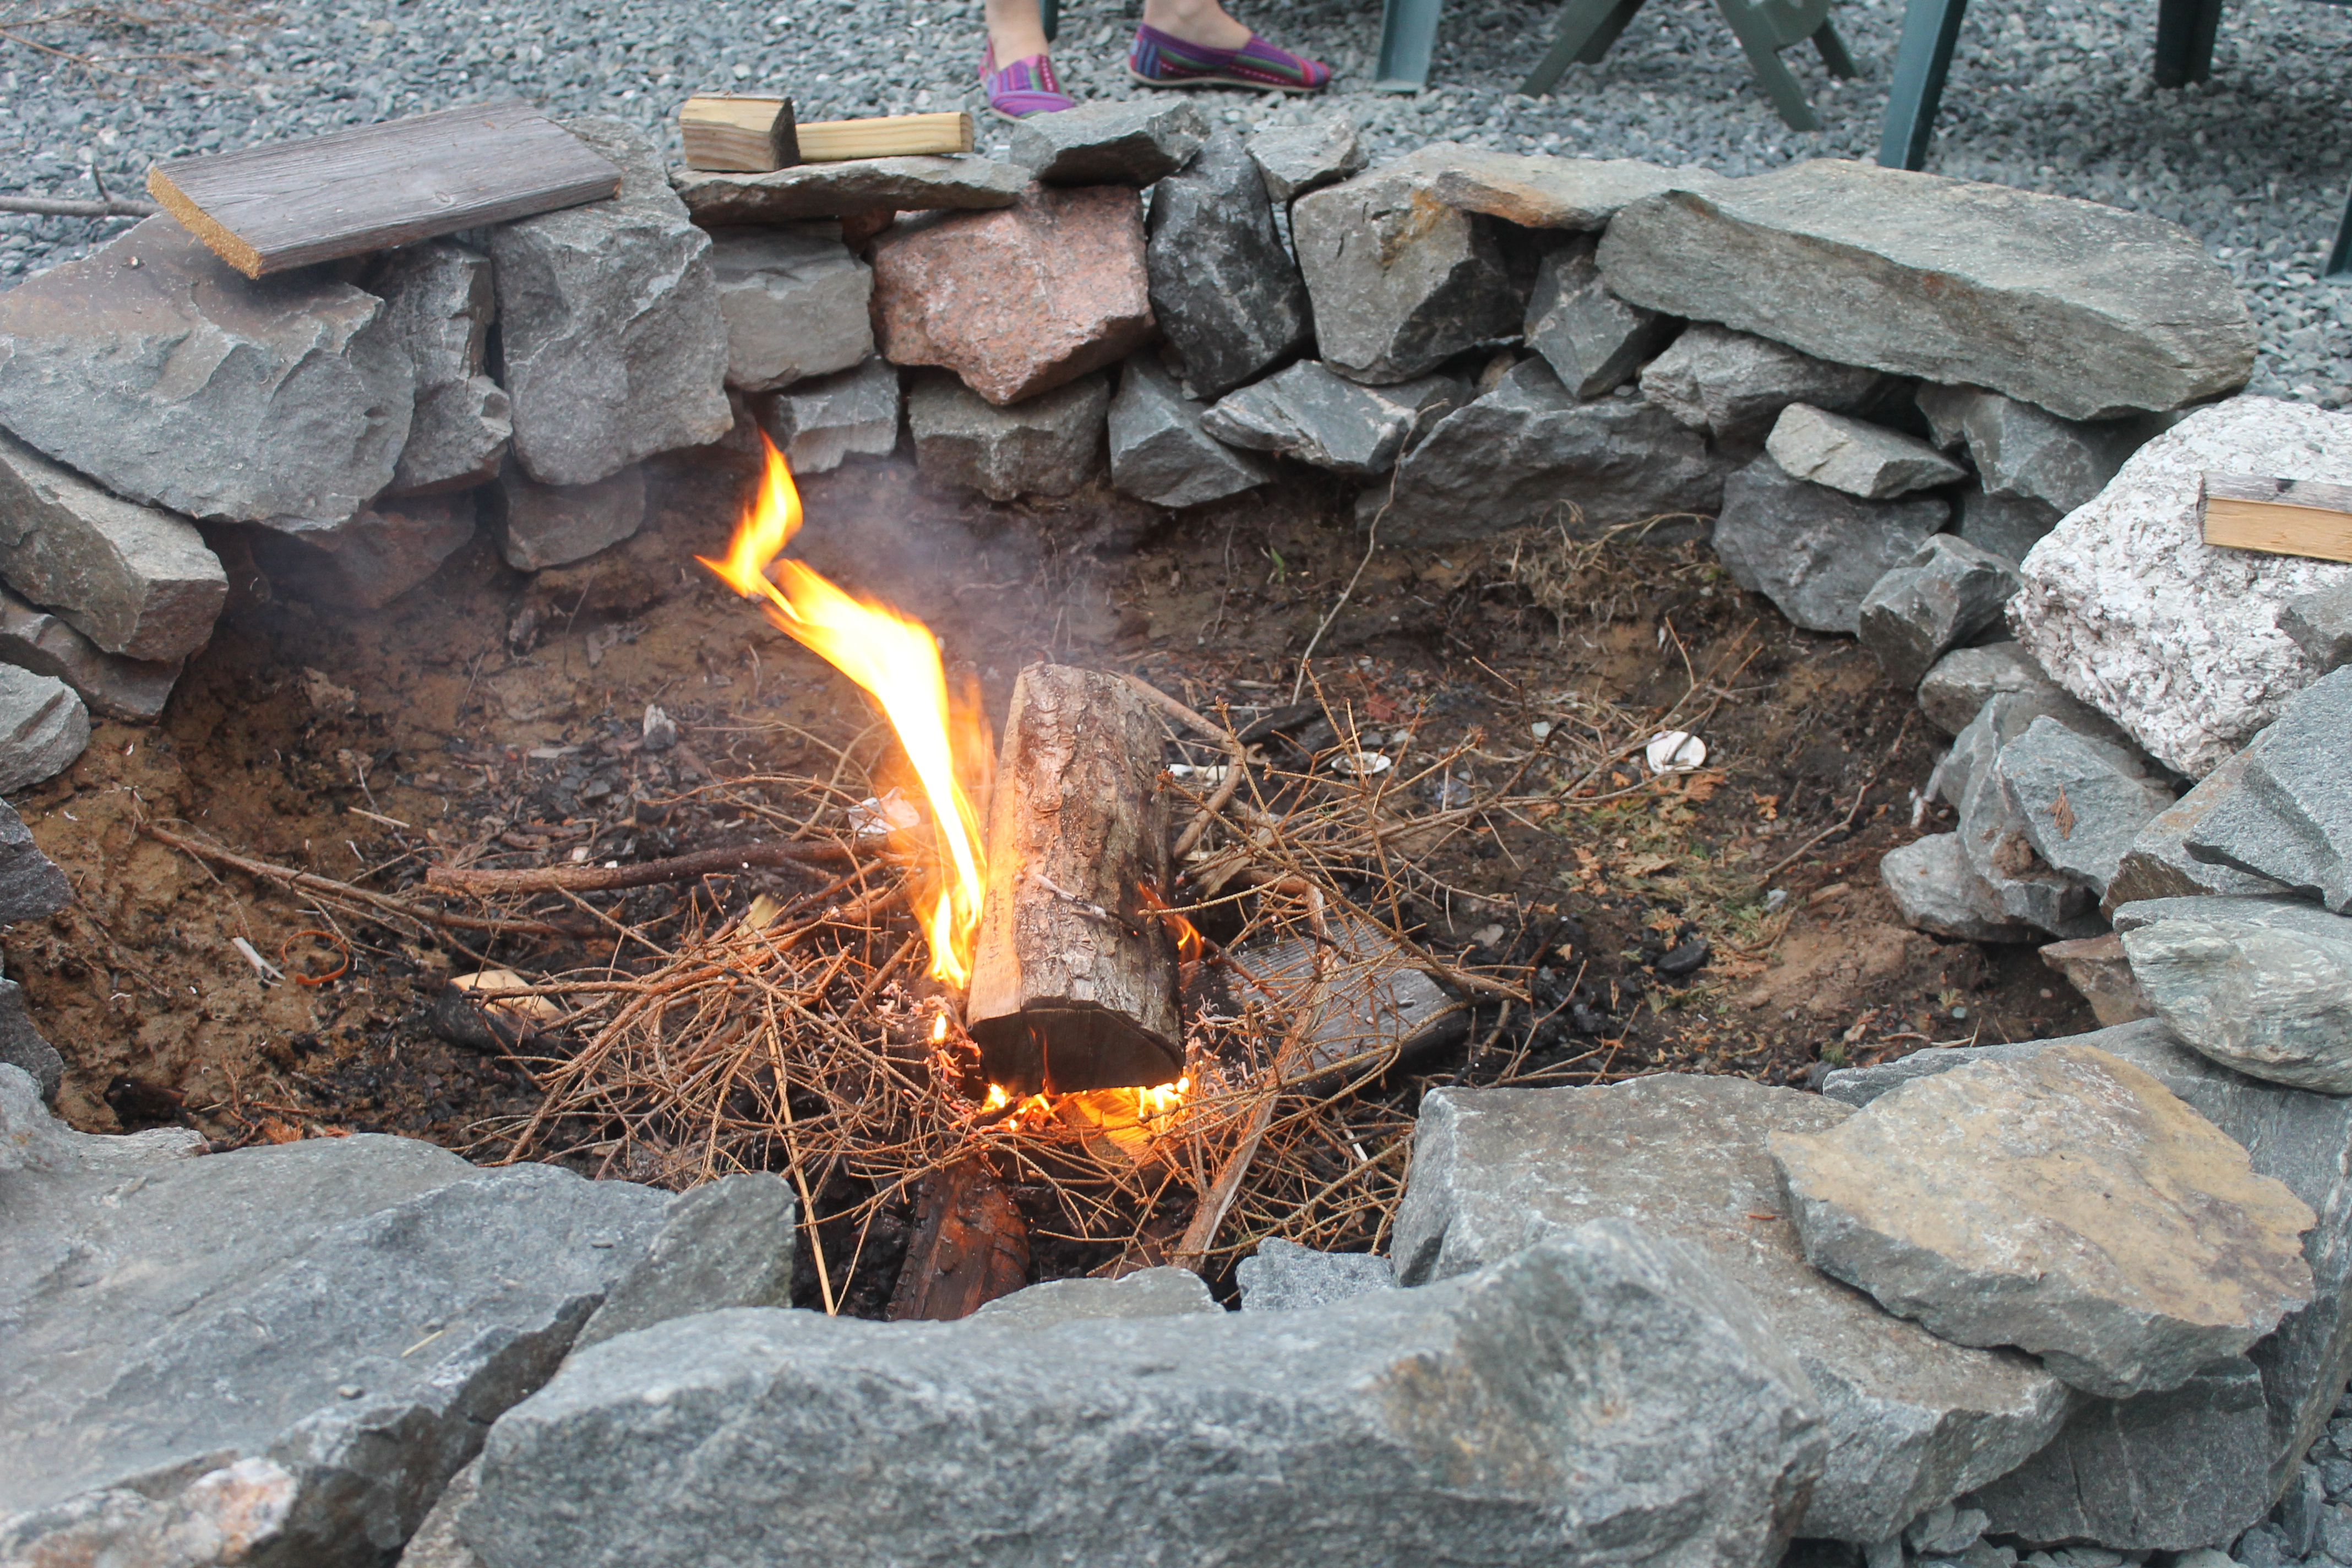 Steel Fire Pit Ring With Cooking Grates